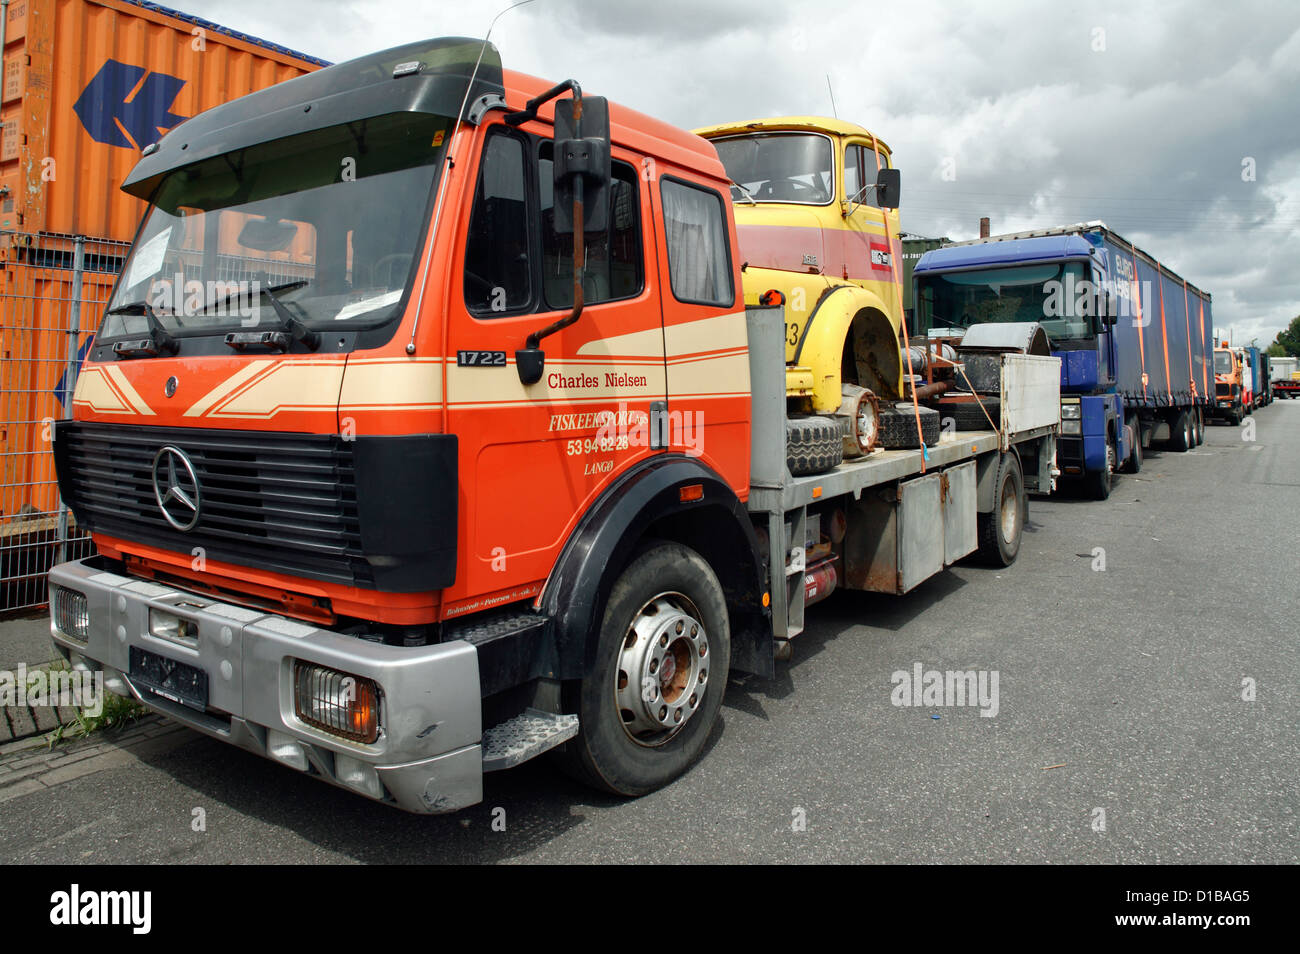 Old Mercedes Truck Stock Photos & Old Mercedes Truck Stock ...